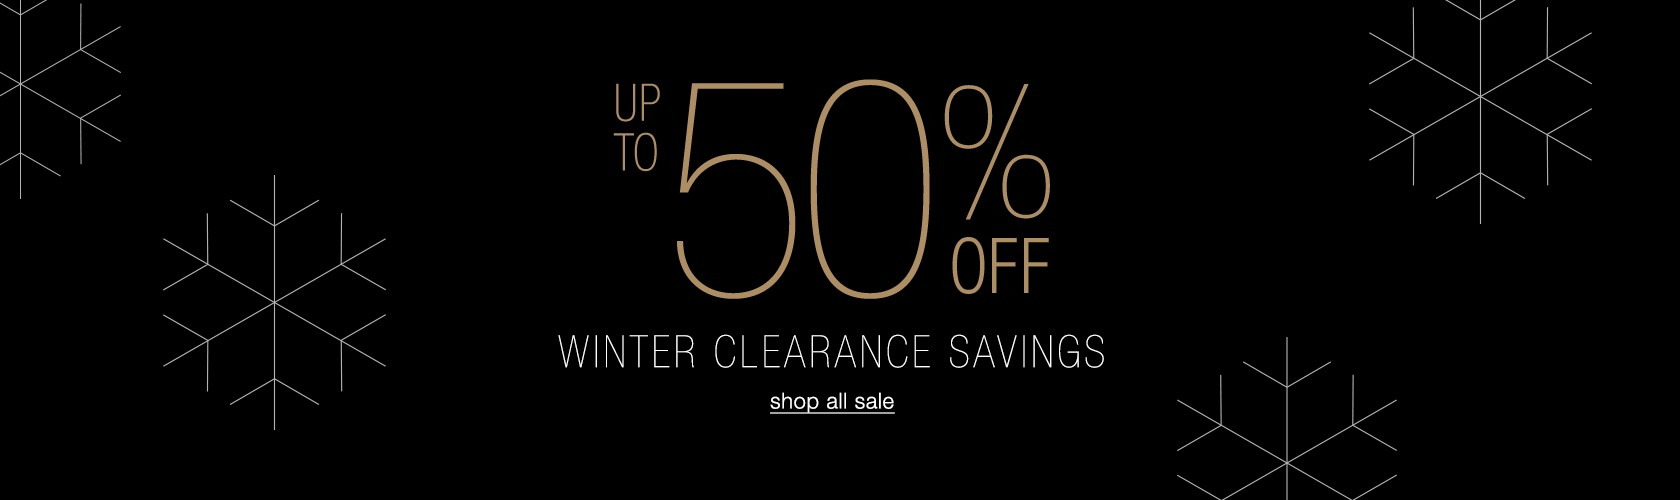 up to 50% off winter clearance savings